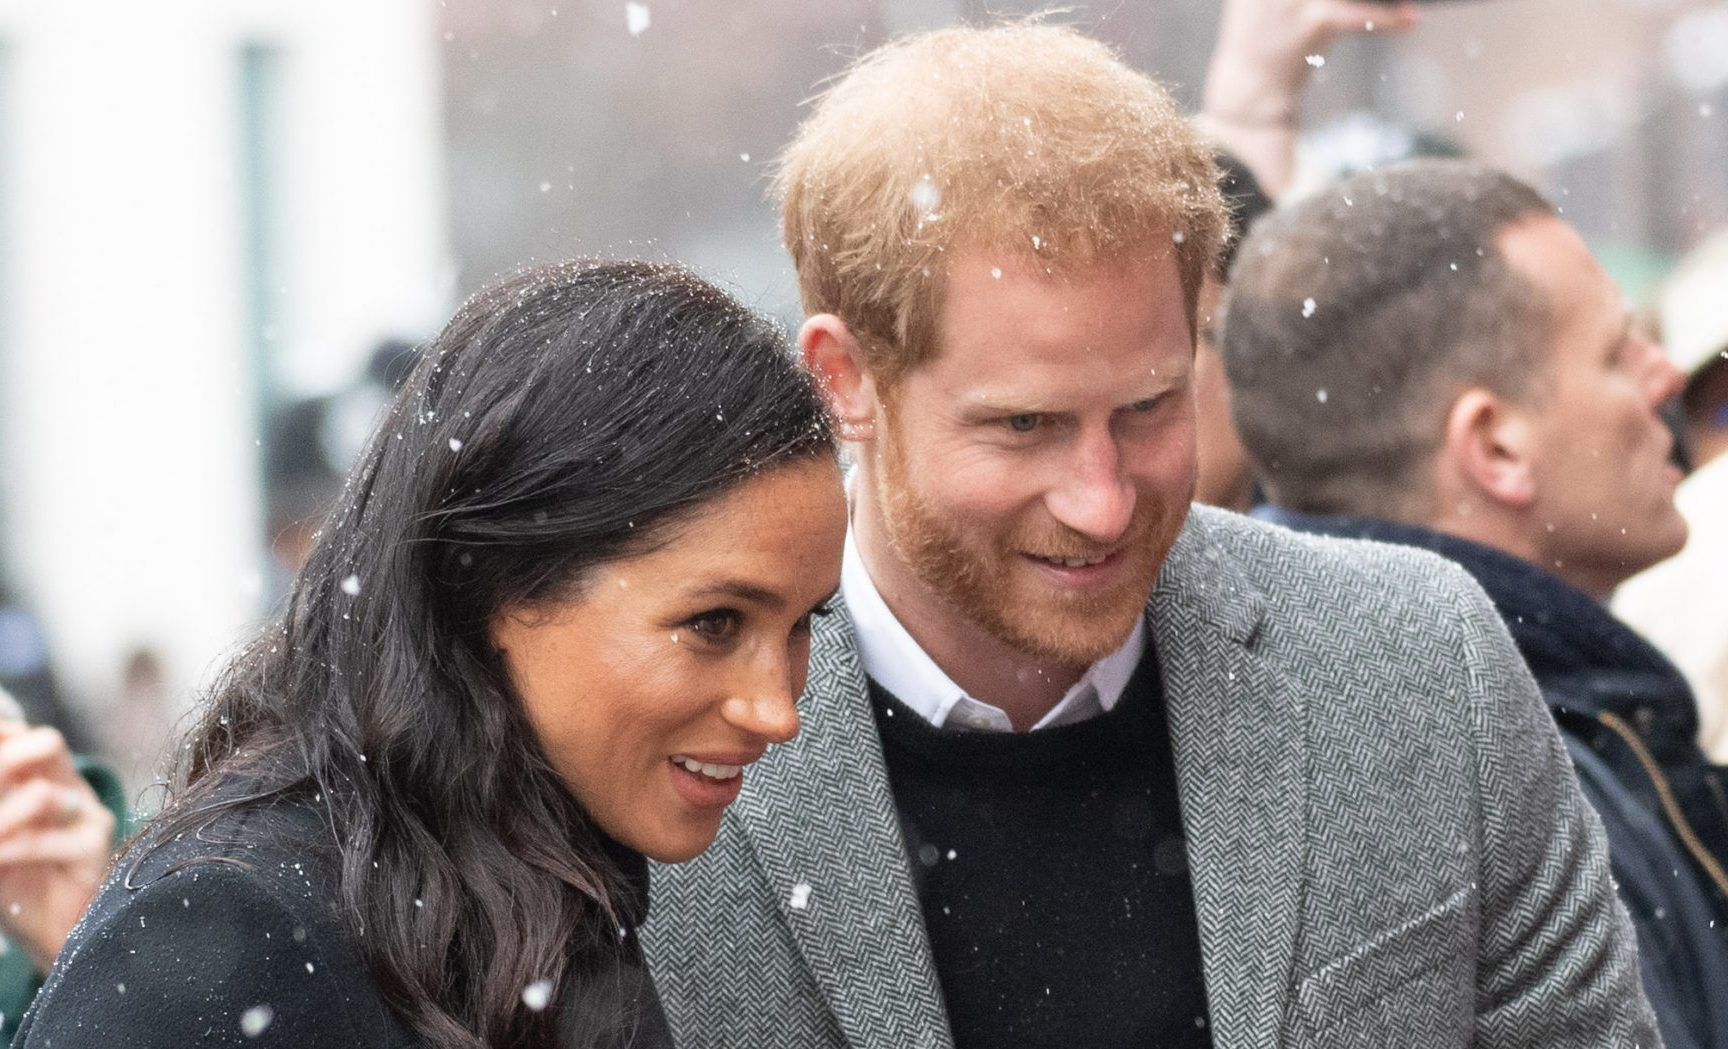 Prince Harry and Meghan Markle will require 'effective security' after quitting as senior royals